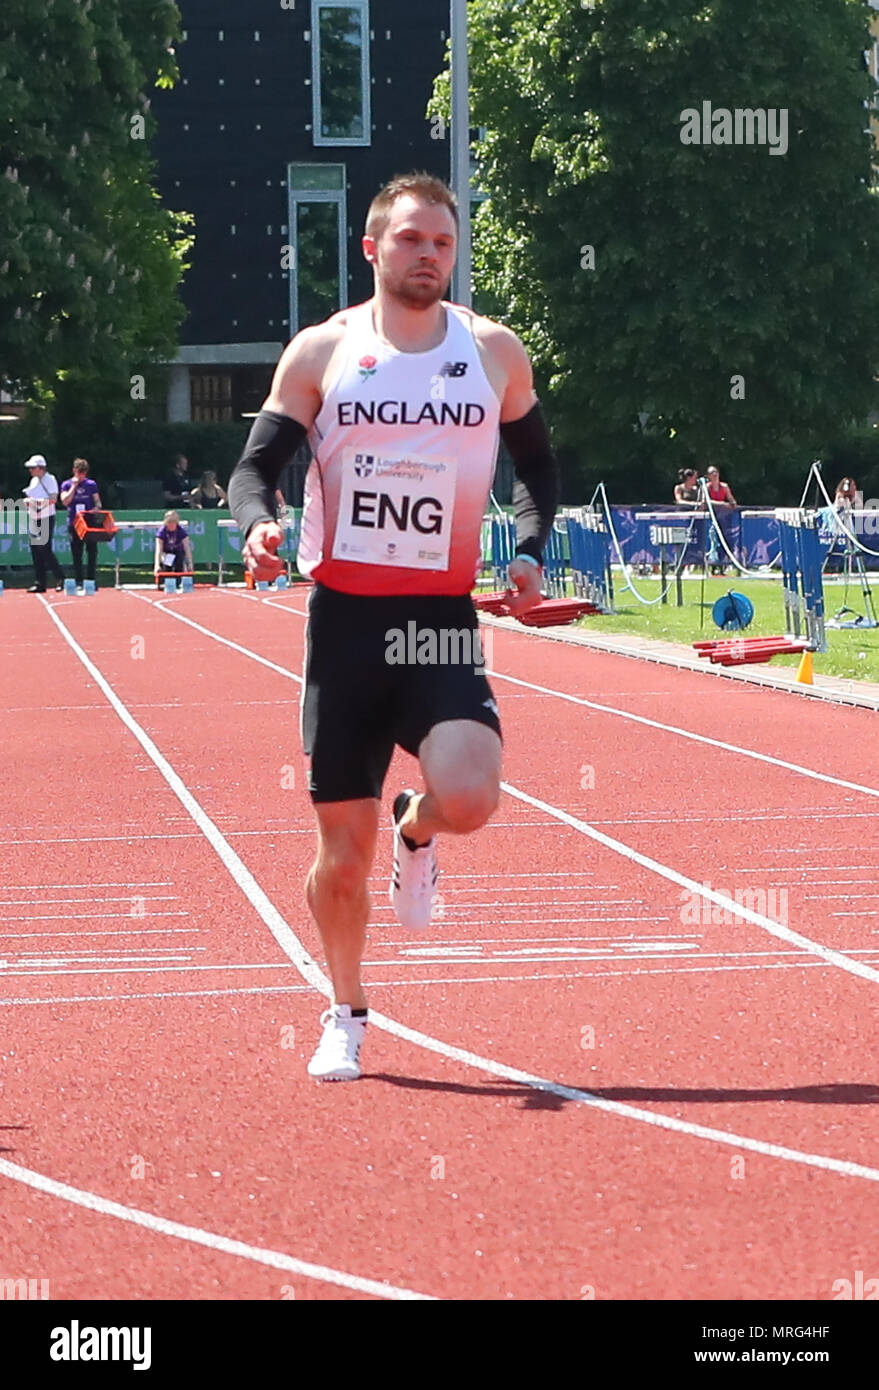 Loughborough, England, 20th, May, 2018.   Andy Robertson competing in the Men's 100 during the LIA Loughborough International Athletics annual meeting - Stock Image